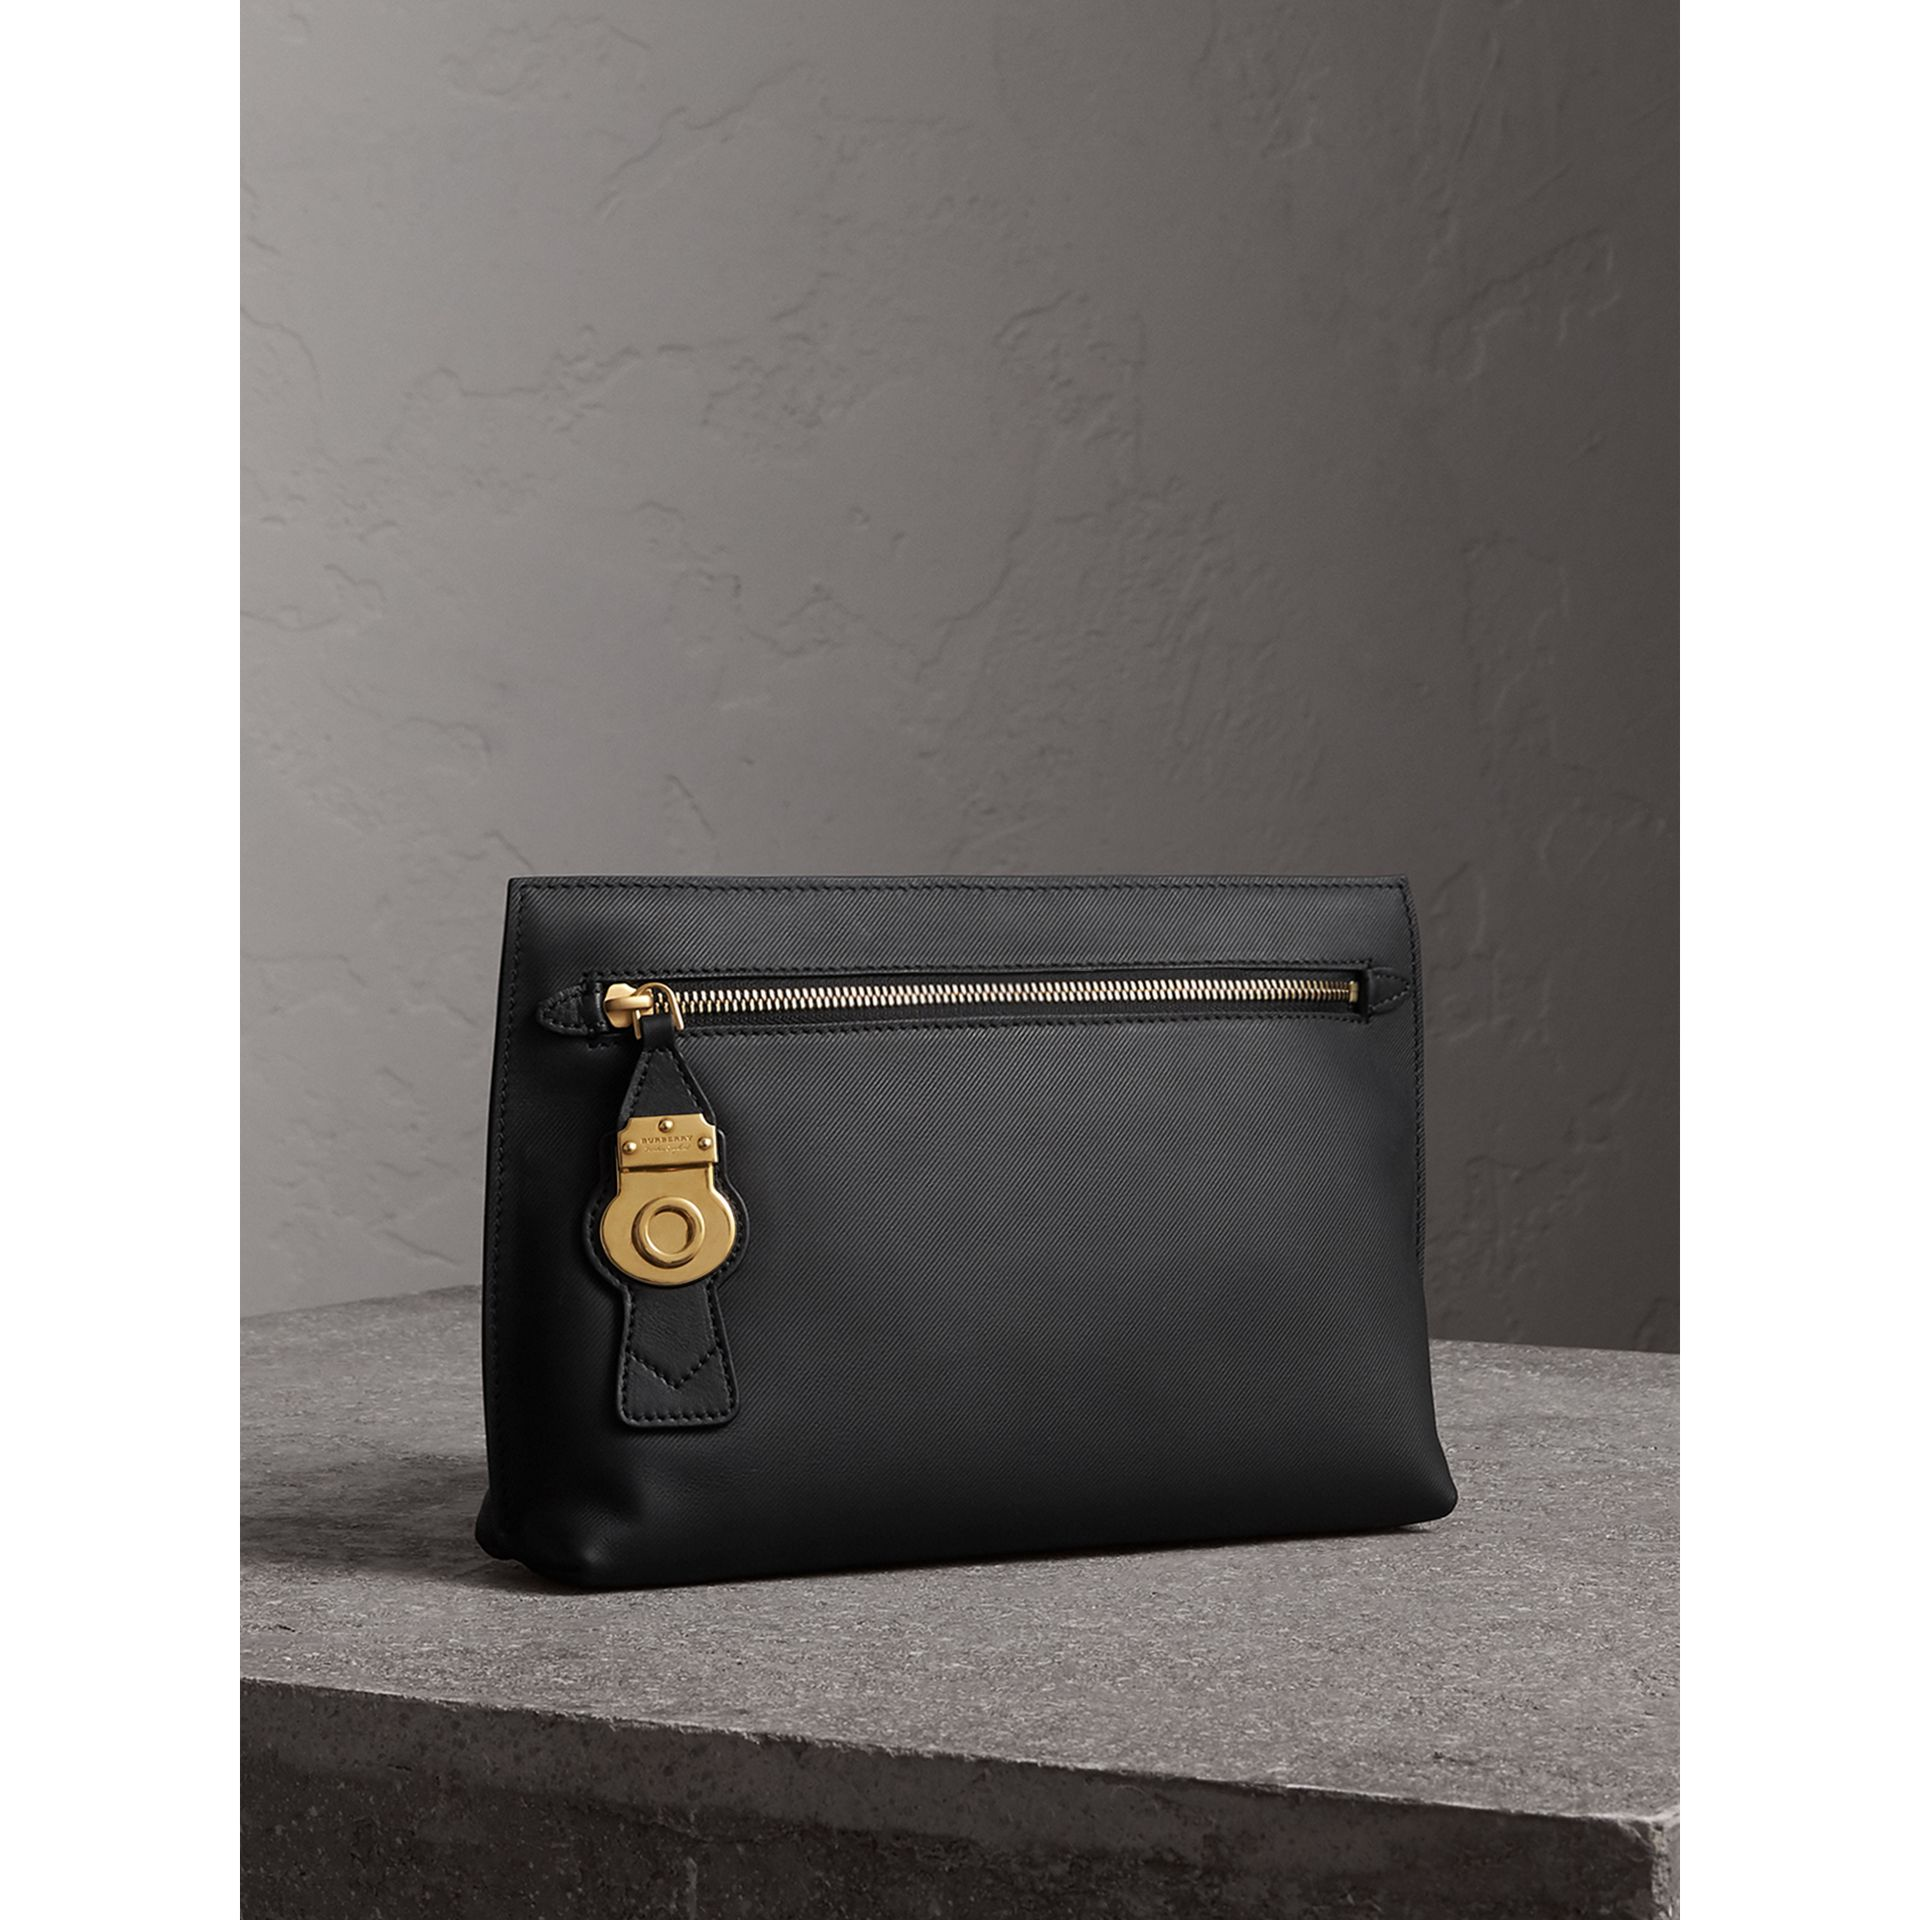 Trench Leather Wristlet Pouch in Black - Women | Burberry - gallery image 6